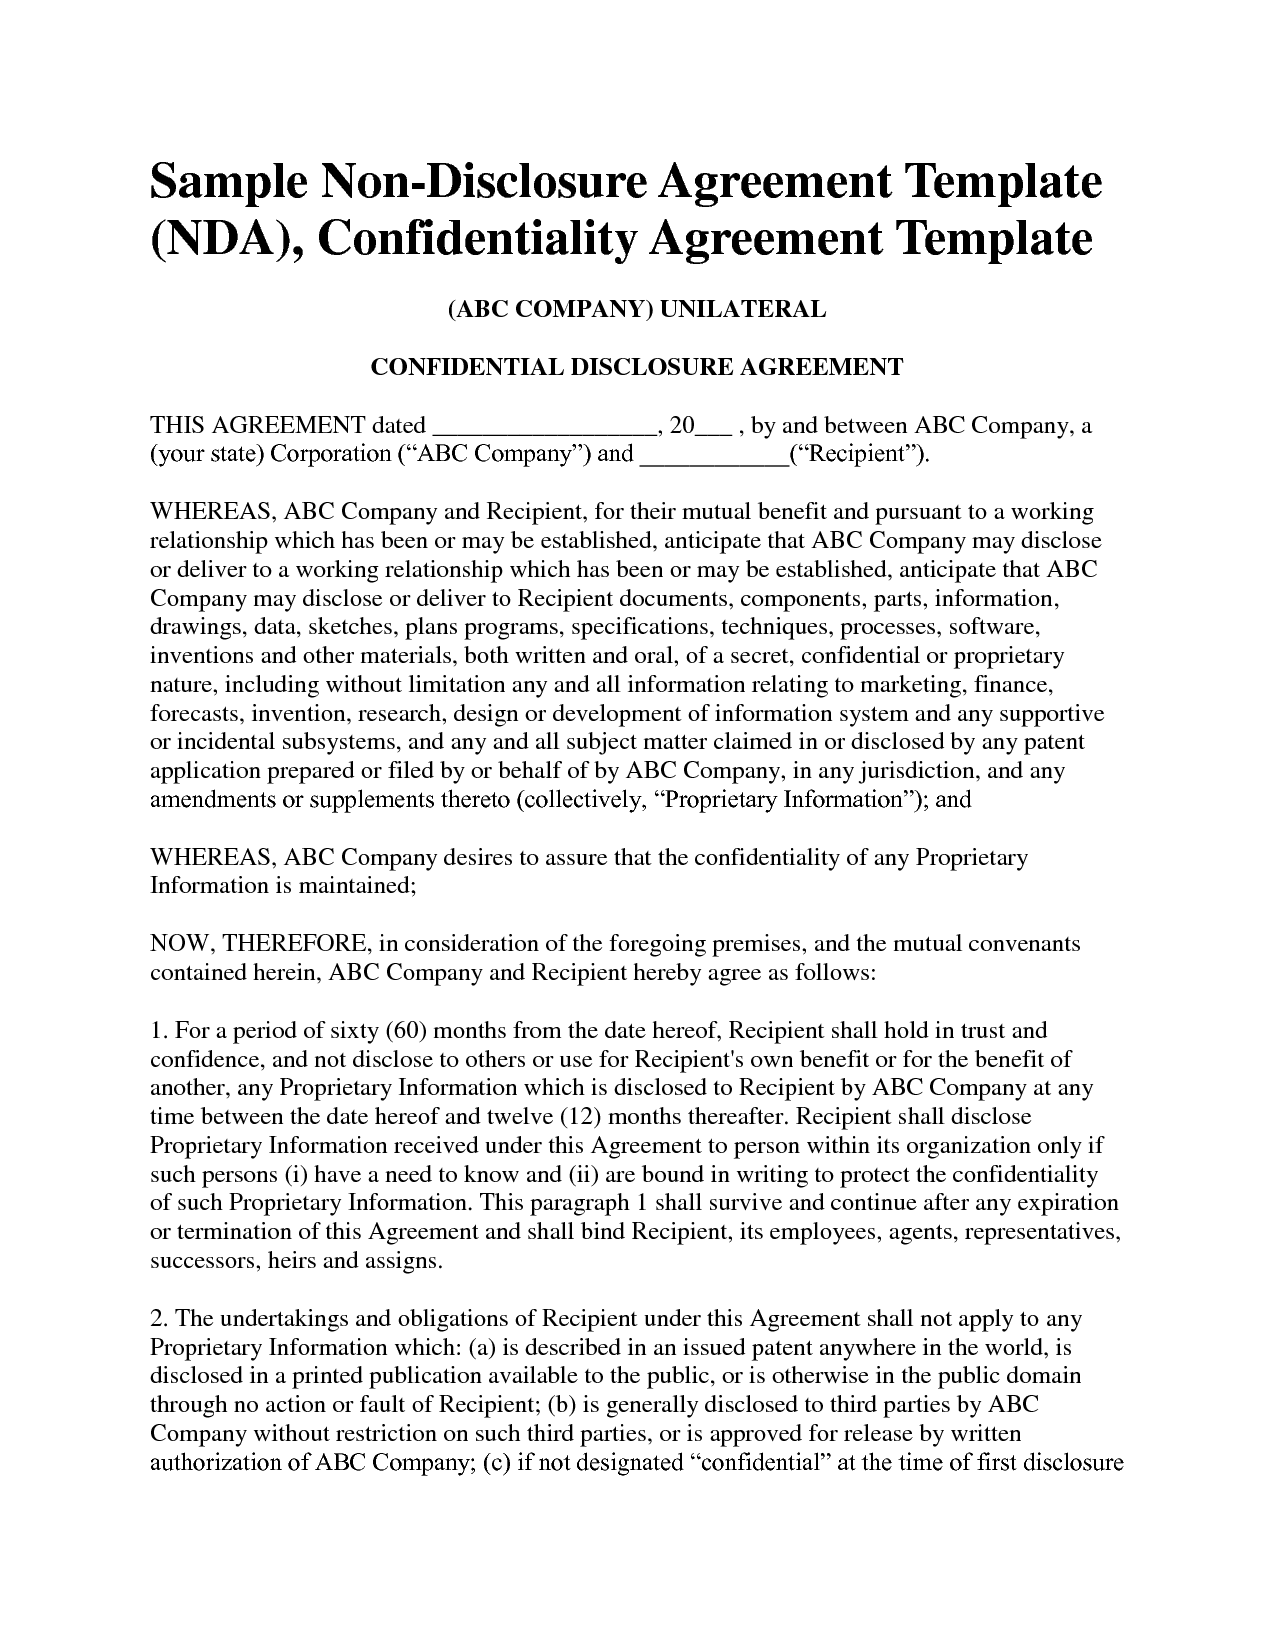 Non disclosure agreement template free sample nda template mvrsqrn non disclosure agreement template free sample nda template mvrsqrn nda sample accmission